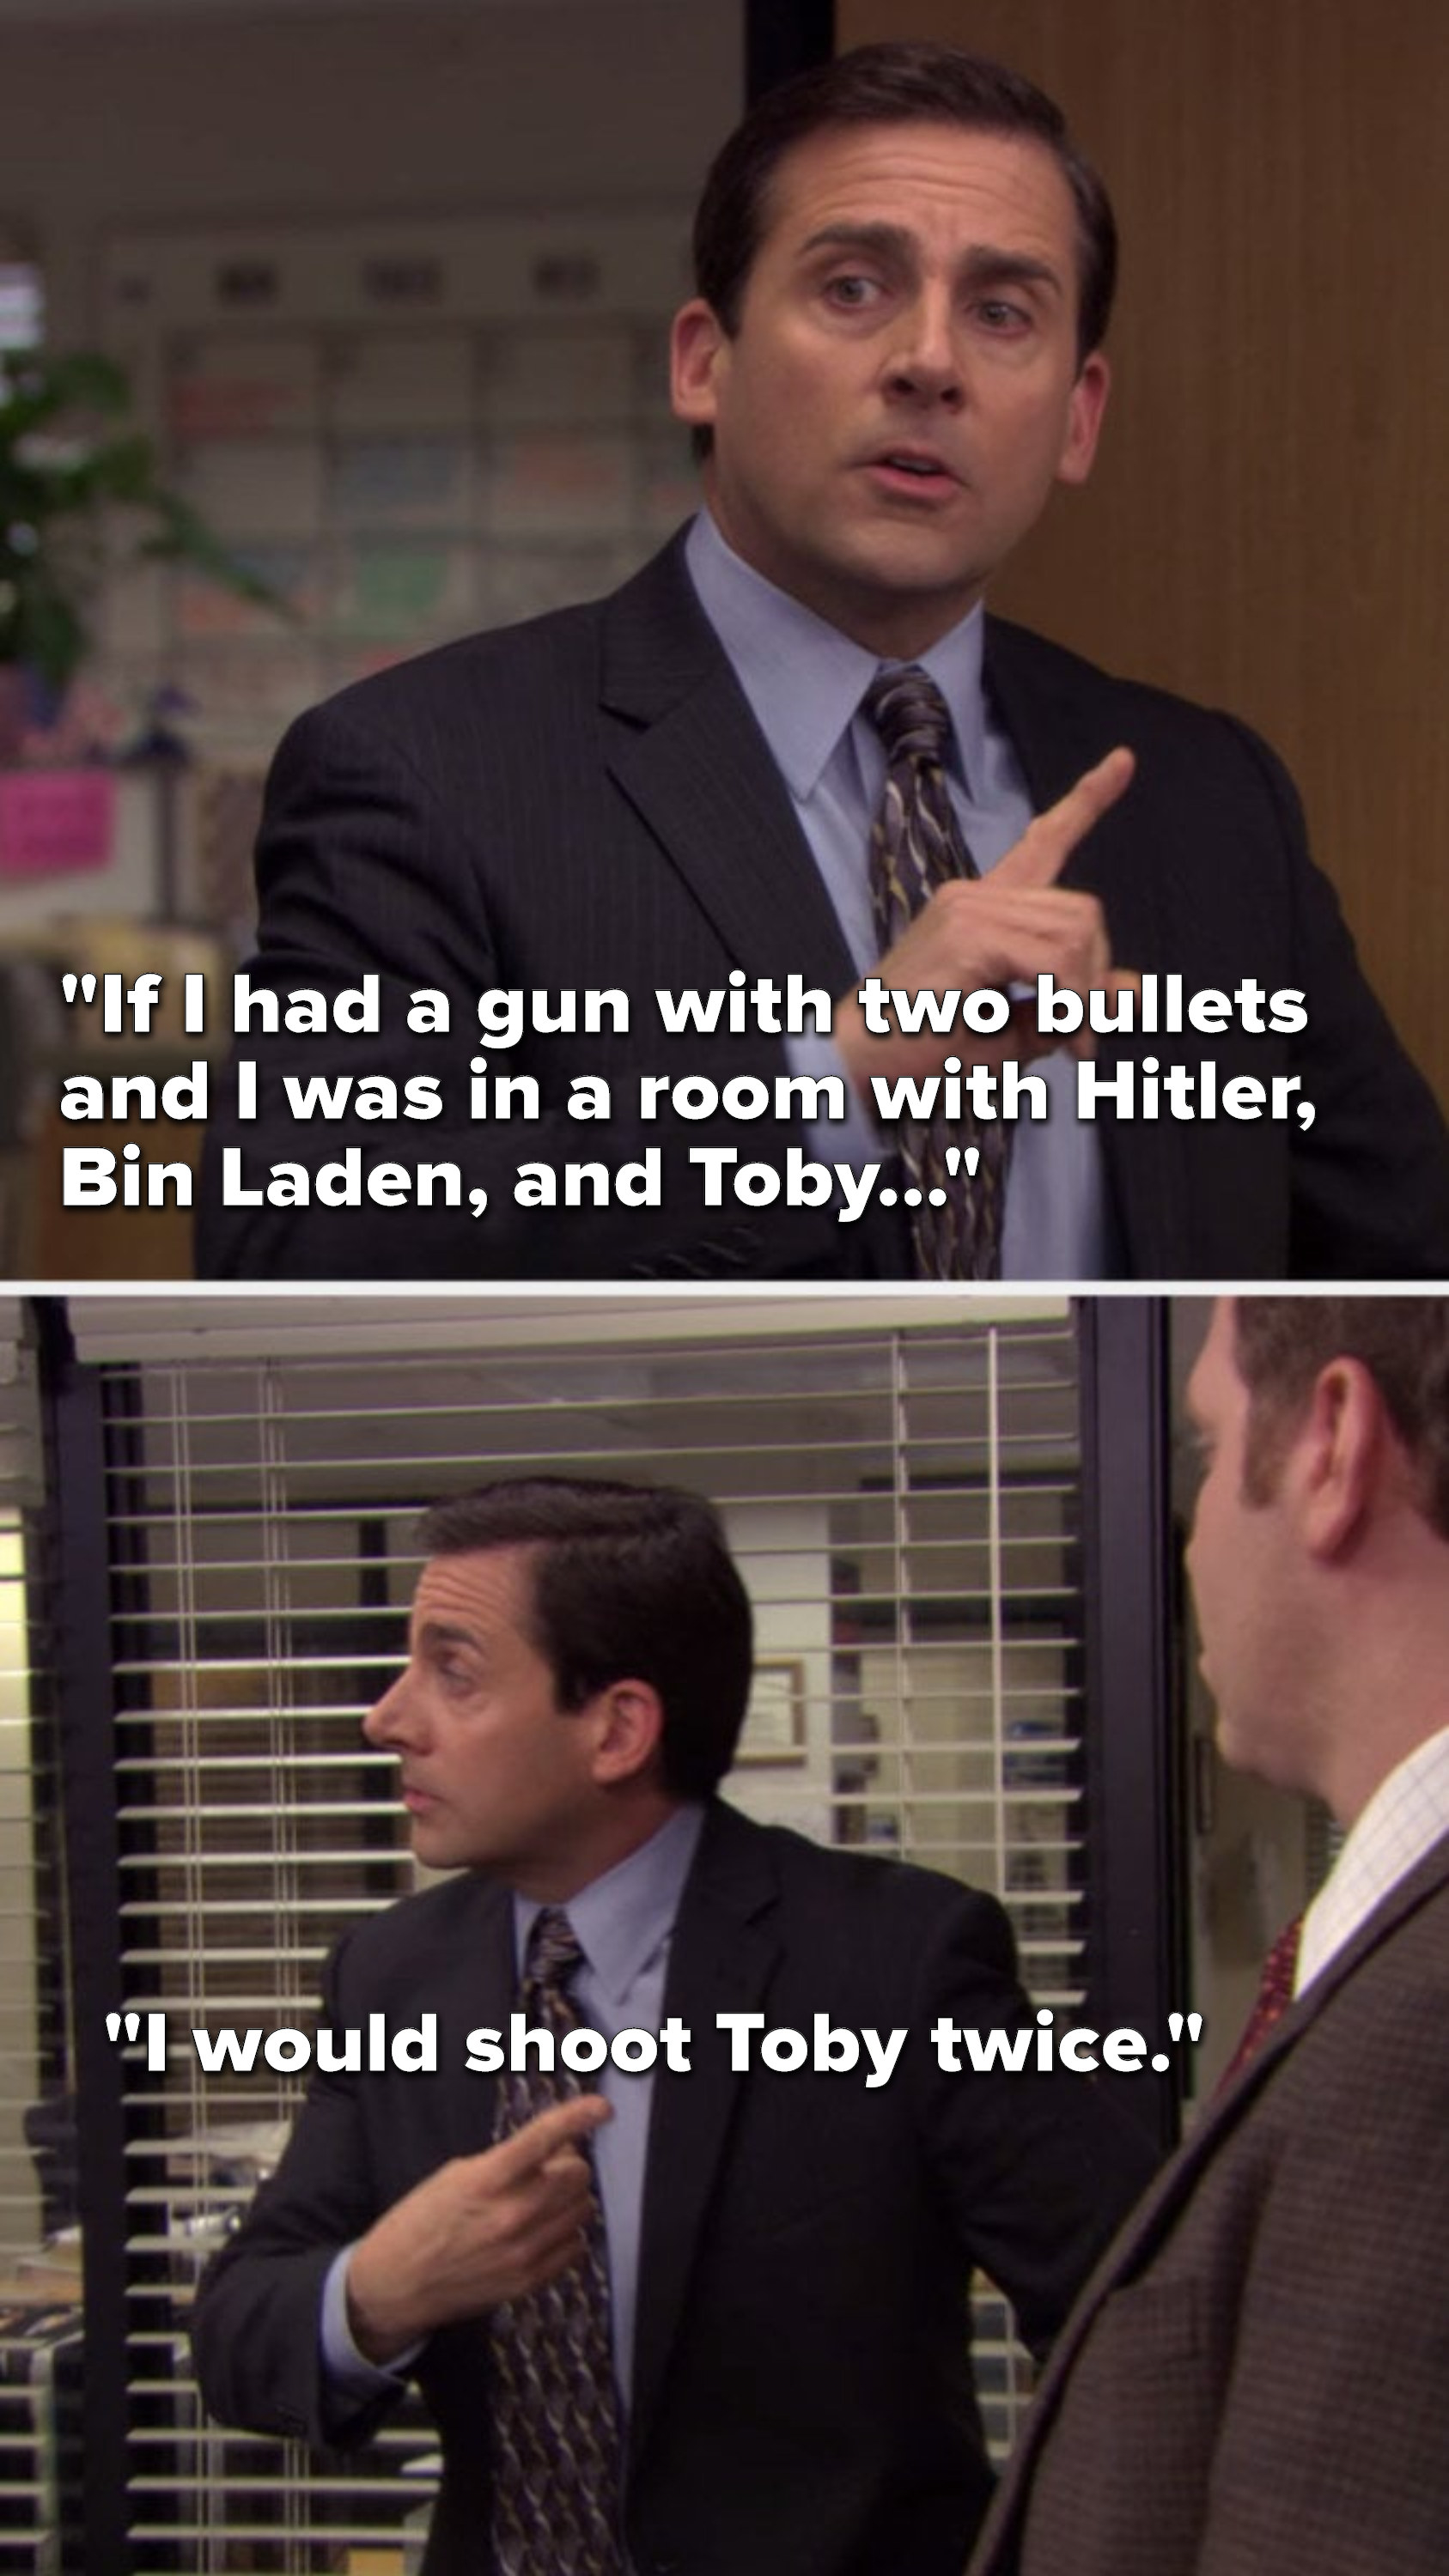 """Michael says, """"If I had a gun with two bullets and I was in a room with Hitler, Bin Laden, and Toby, I would shoot Toby twice"""""""